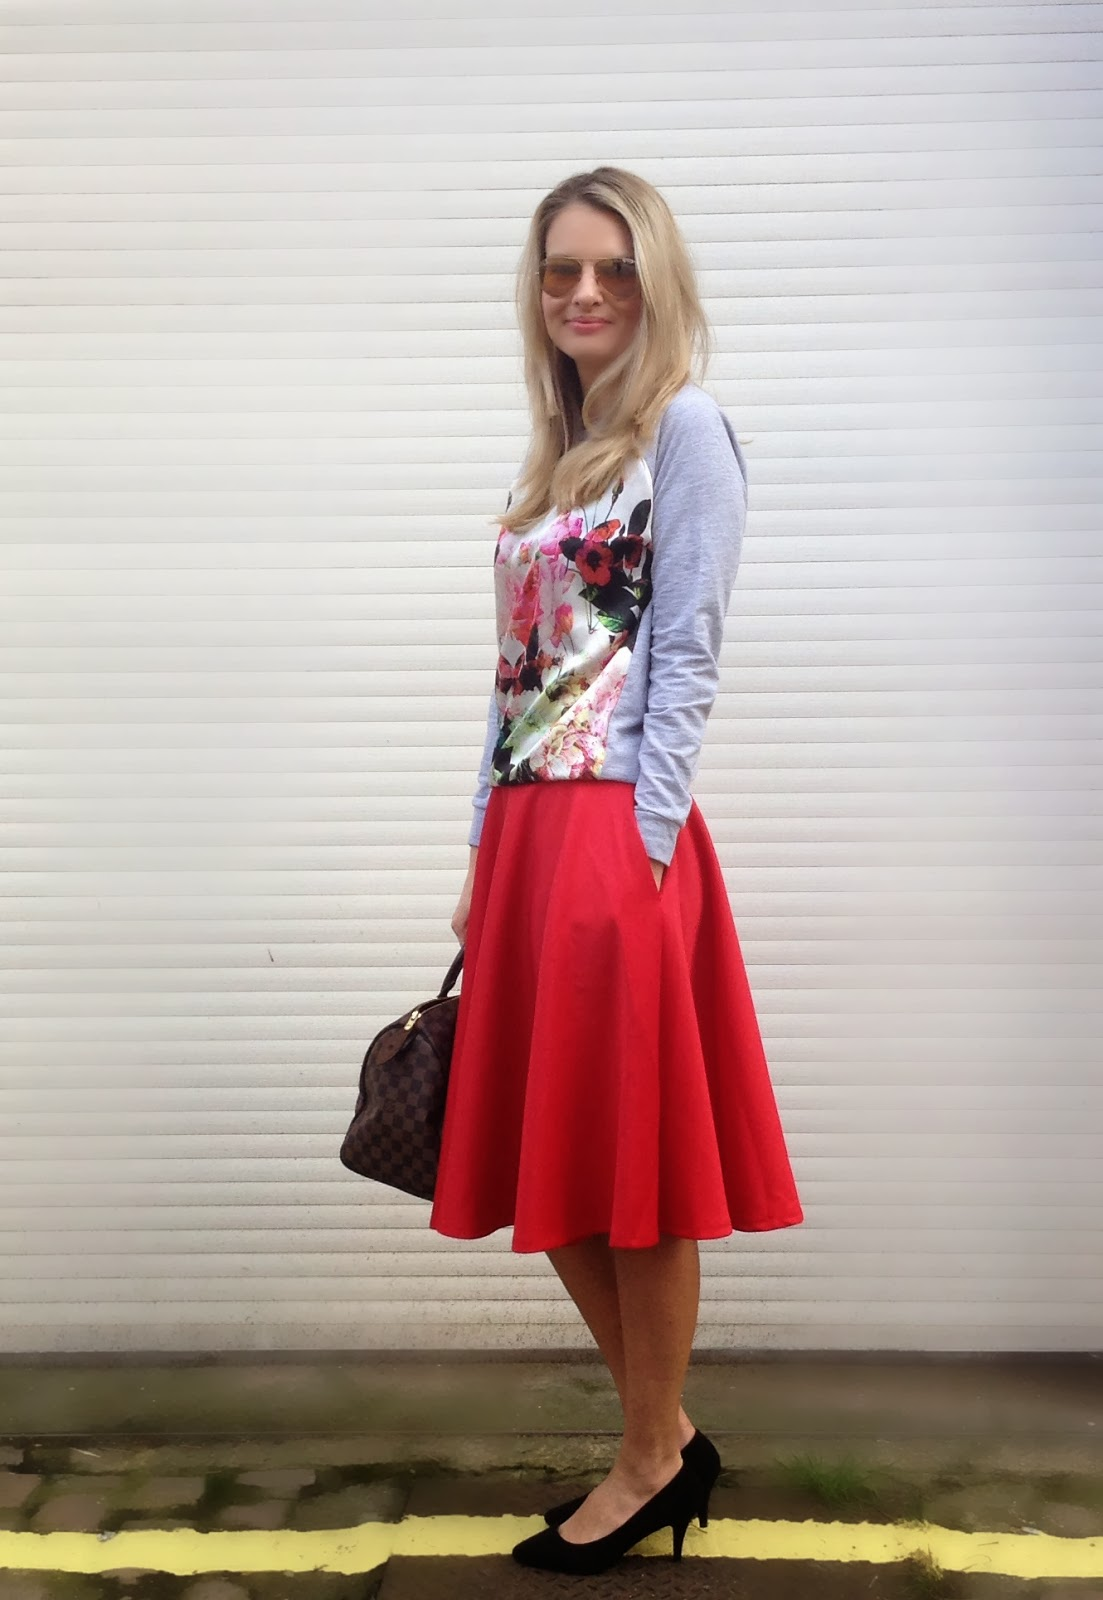 red skirt, scuba skirt, skirt with pockets, red scuba skirt, red midi skirt, flower top, flower print top, spring trend, floral prints, street style